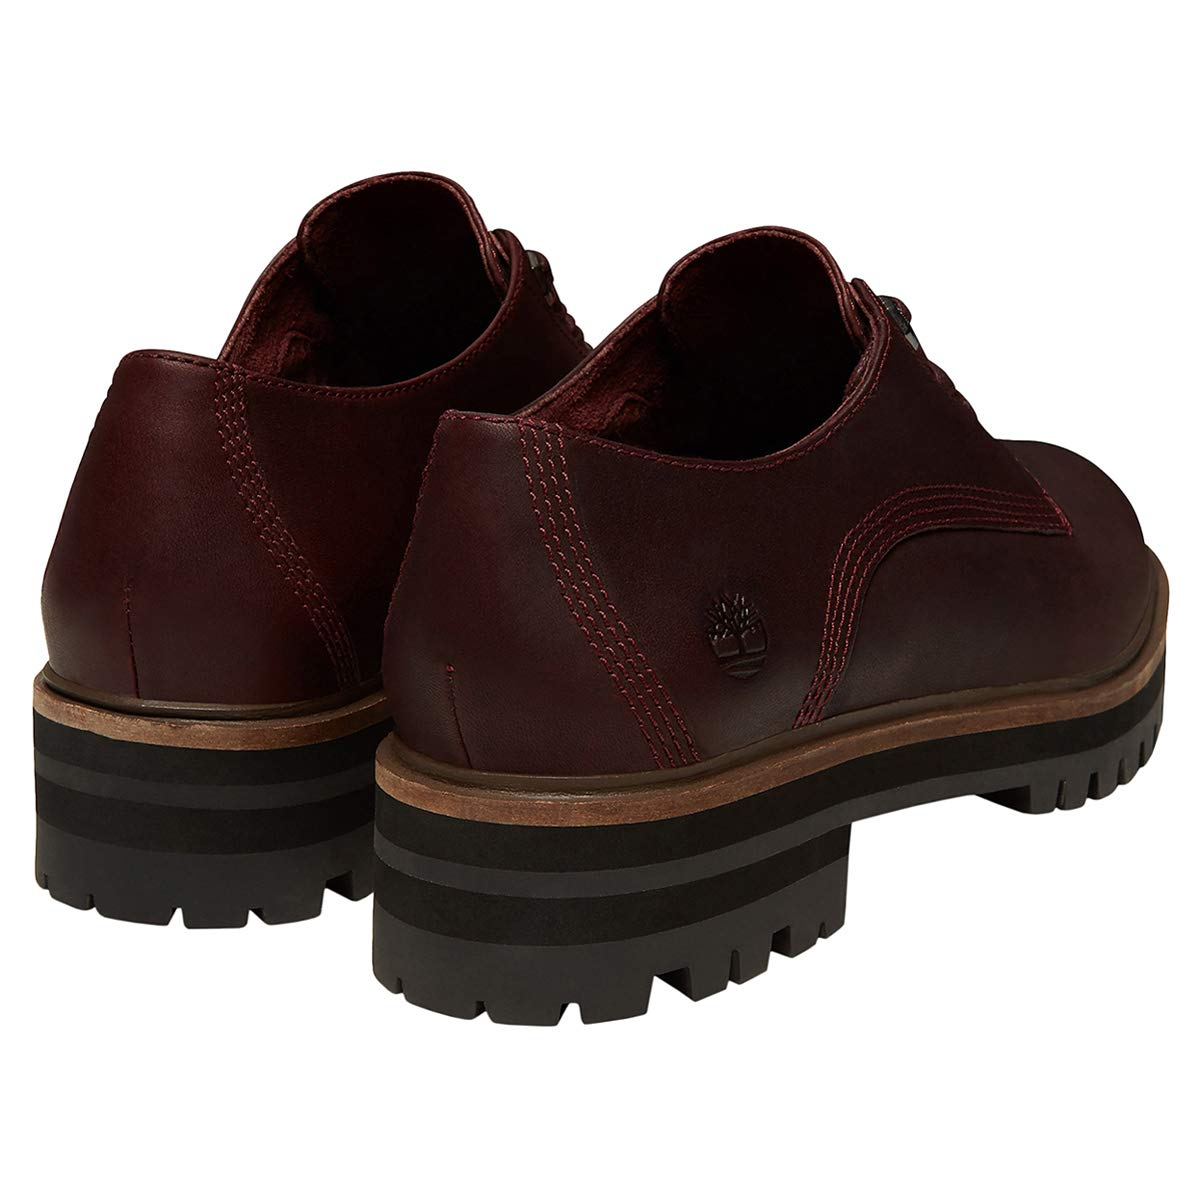 Timberland Womens London Square Oxford Leather Shoes